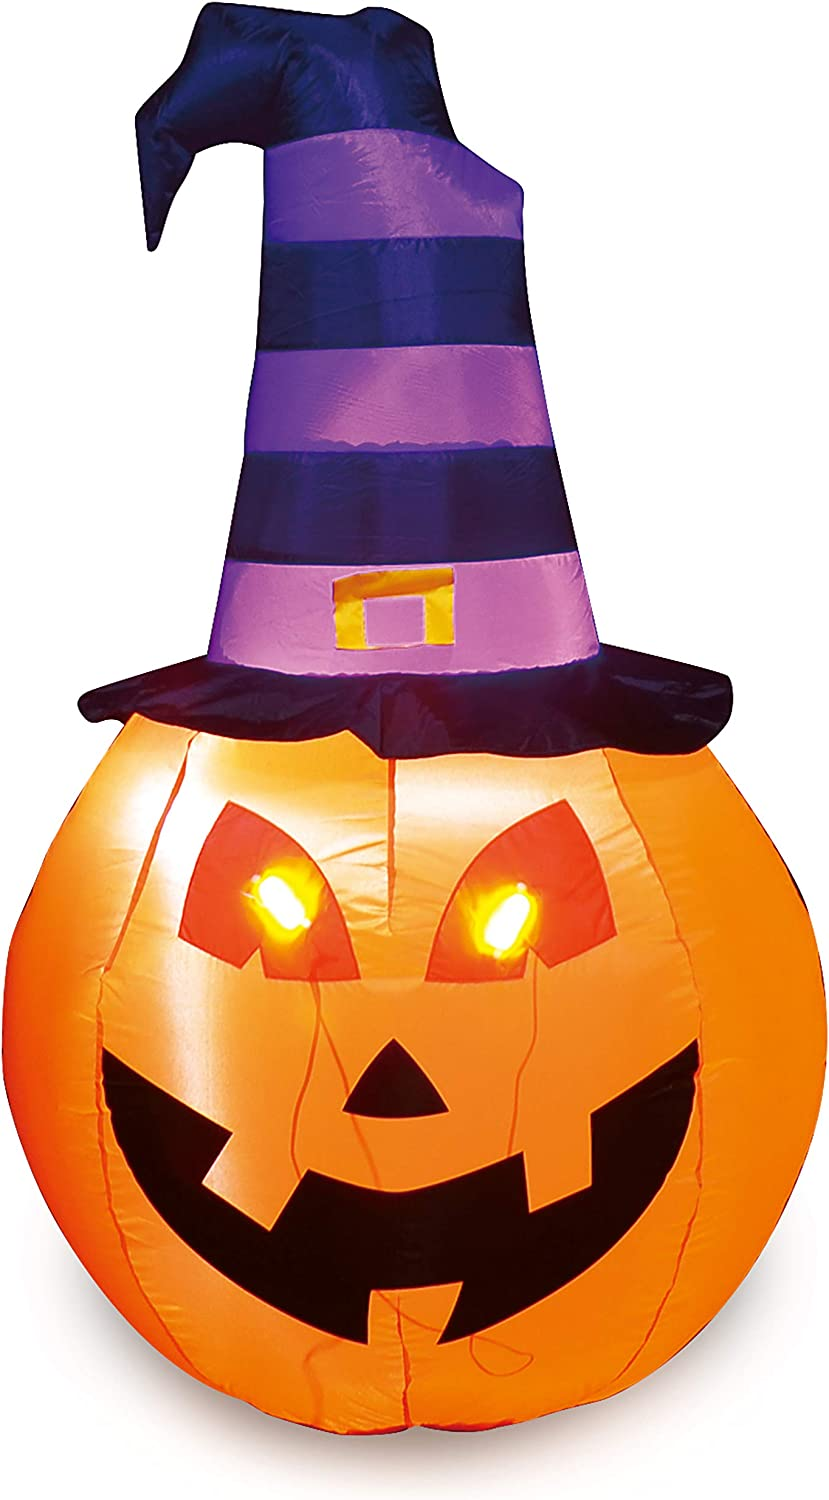 Joiedomi Halloween 5 FT Inflatable Pumpkin Witch with Build-in LEDs Blow Up Inflatables for Halloween Party Indoor, Outdoor, Yard, Garden, Lawn Decorations